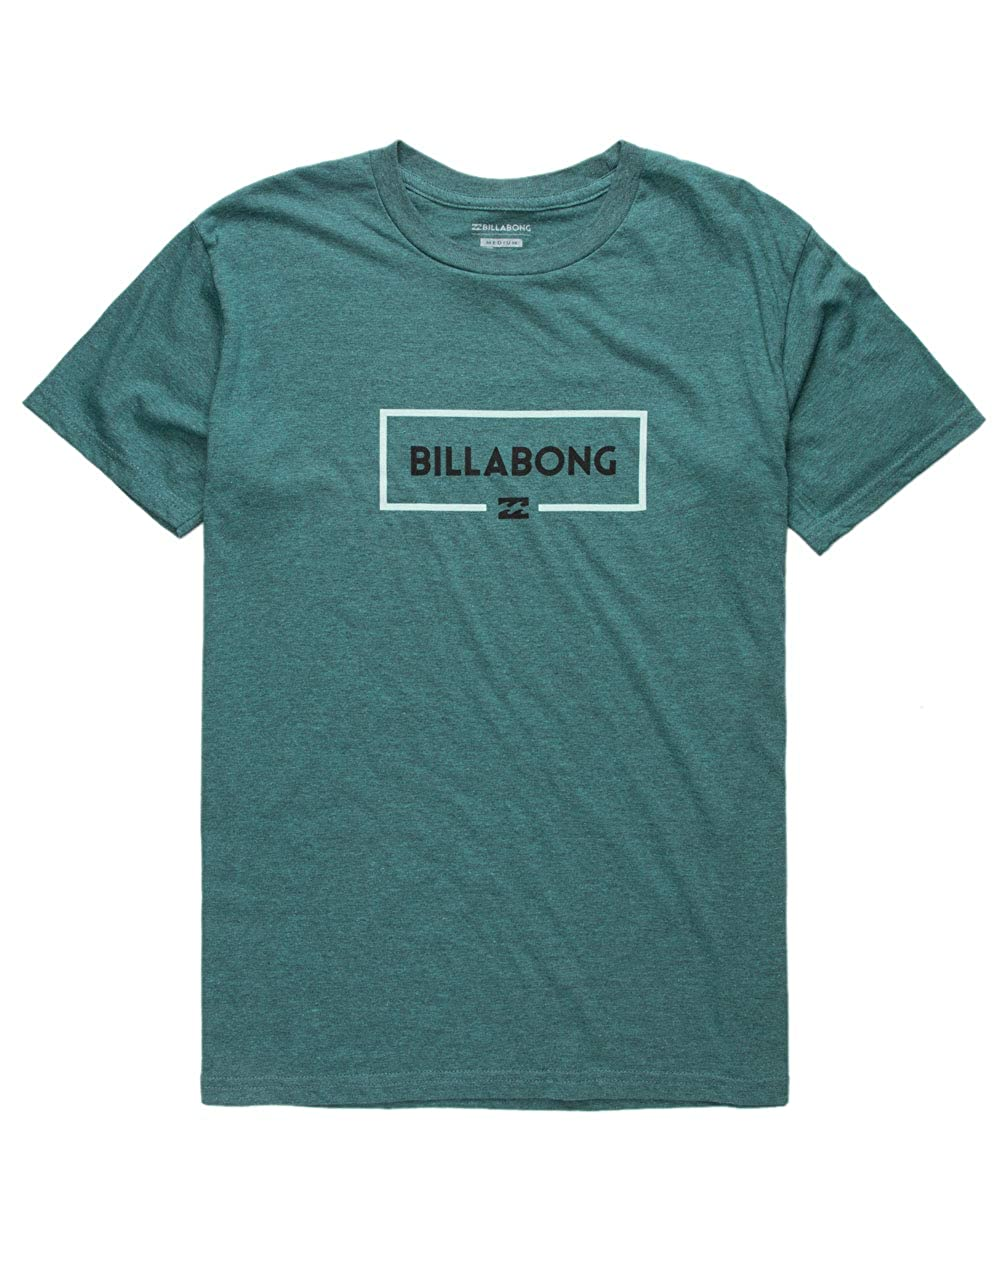 Billabong Swelled Heather Turquoise T-Shirt